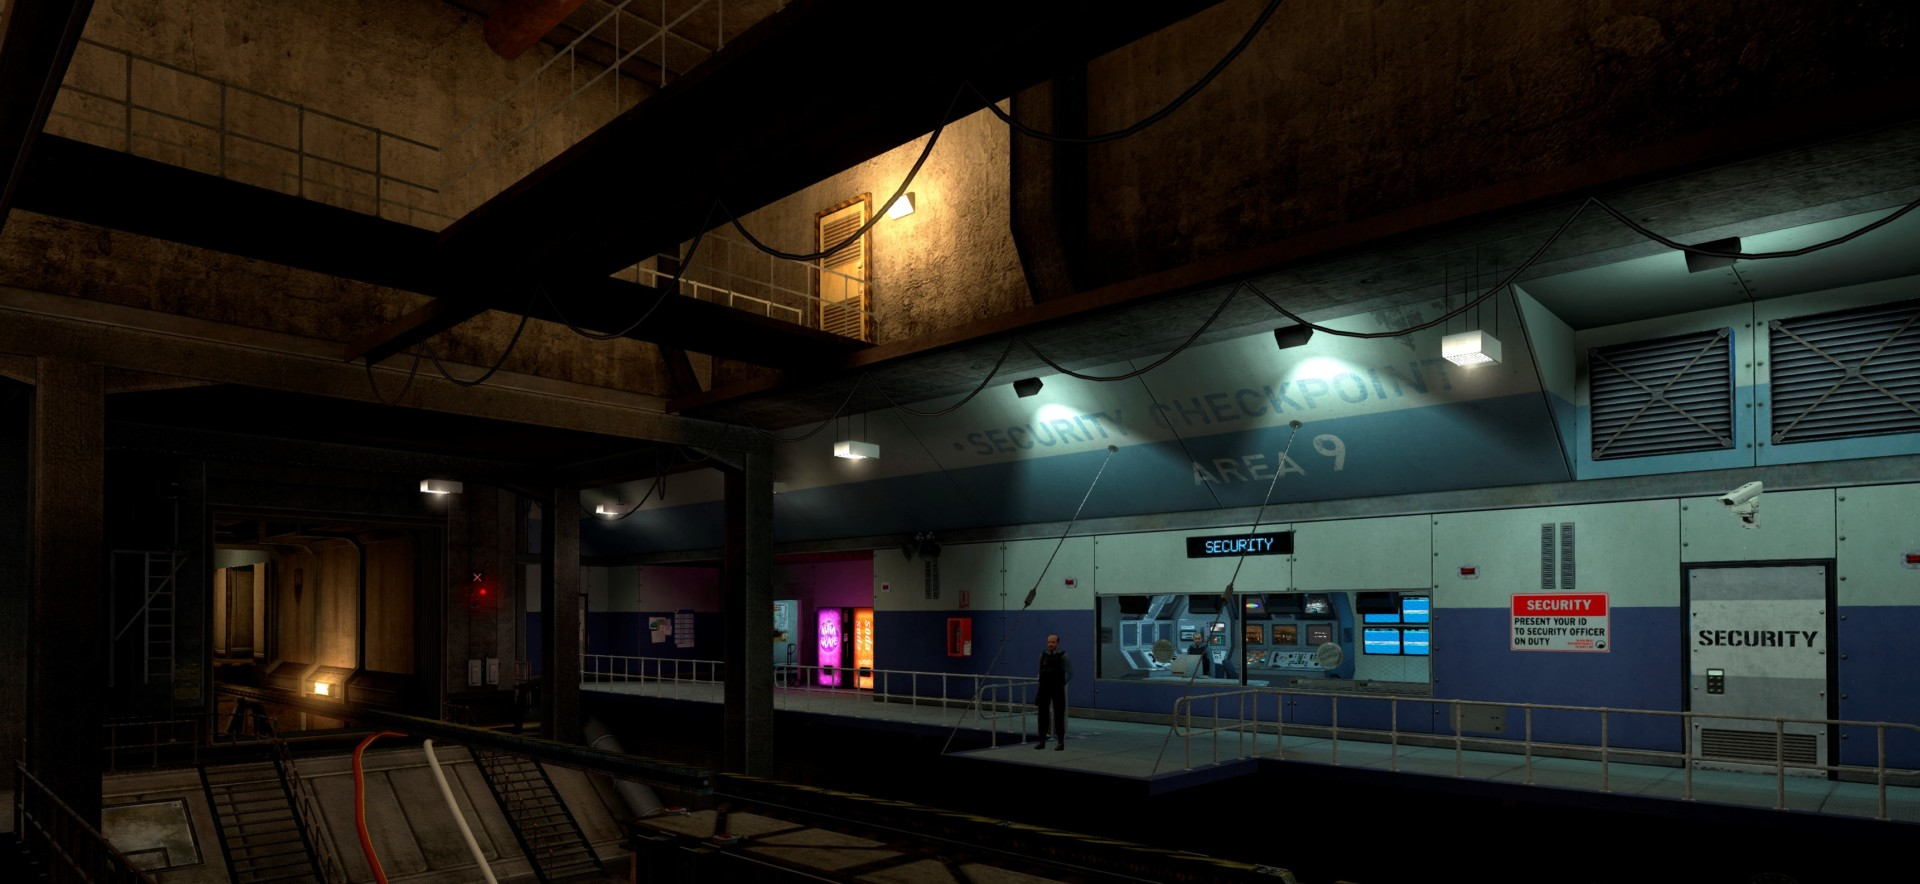 Black-Mesa-Blue-Shift-a-remake-of-the-Half-Life-expansion-announced-1.jpg